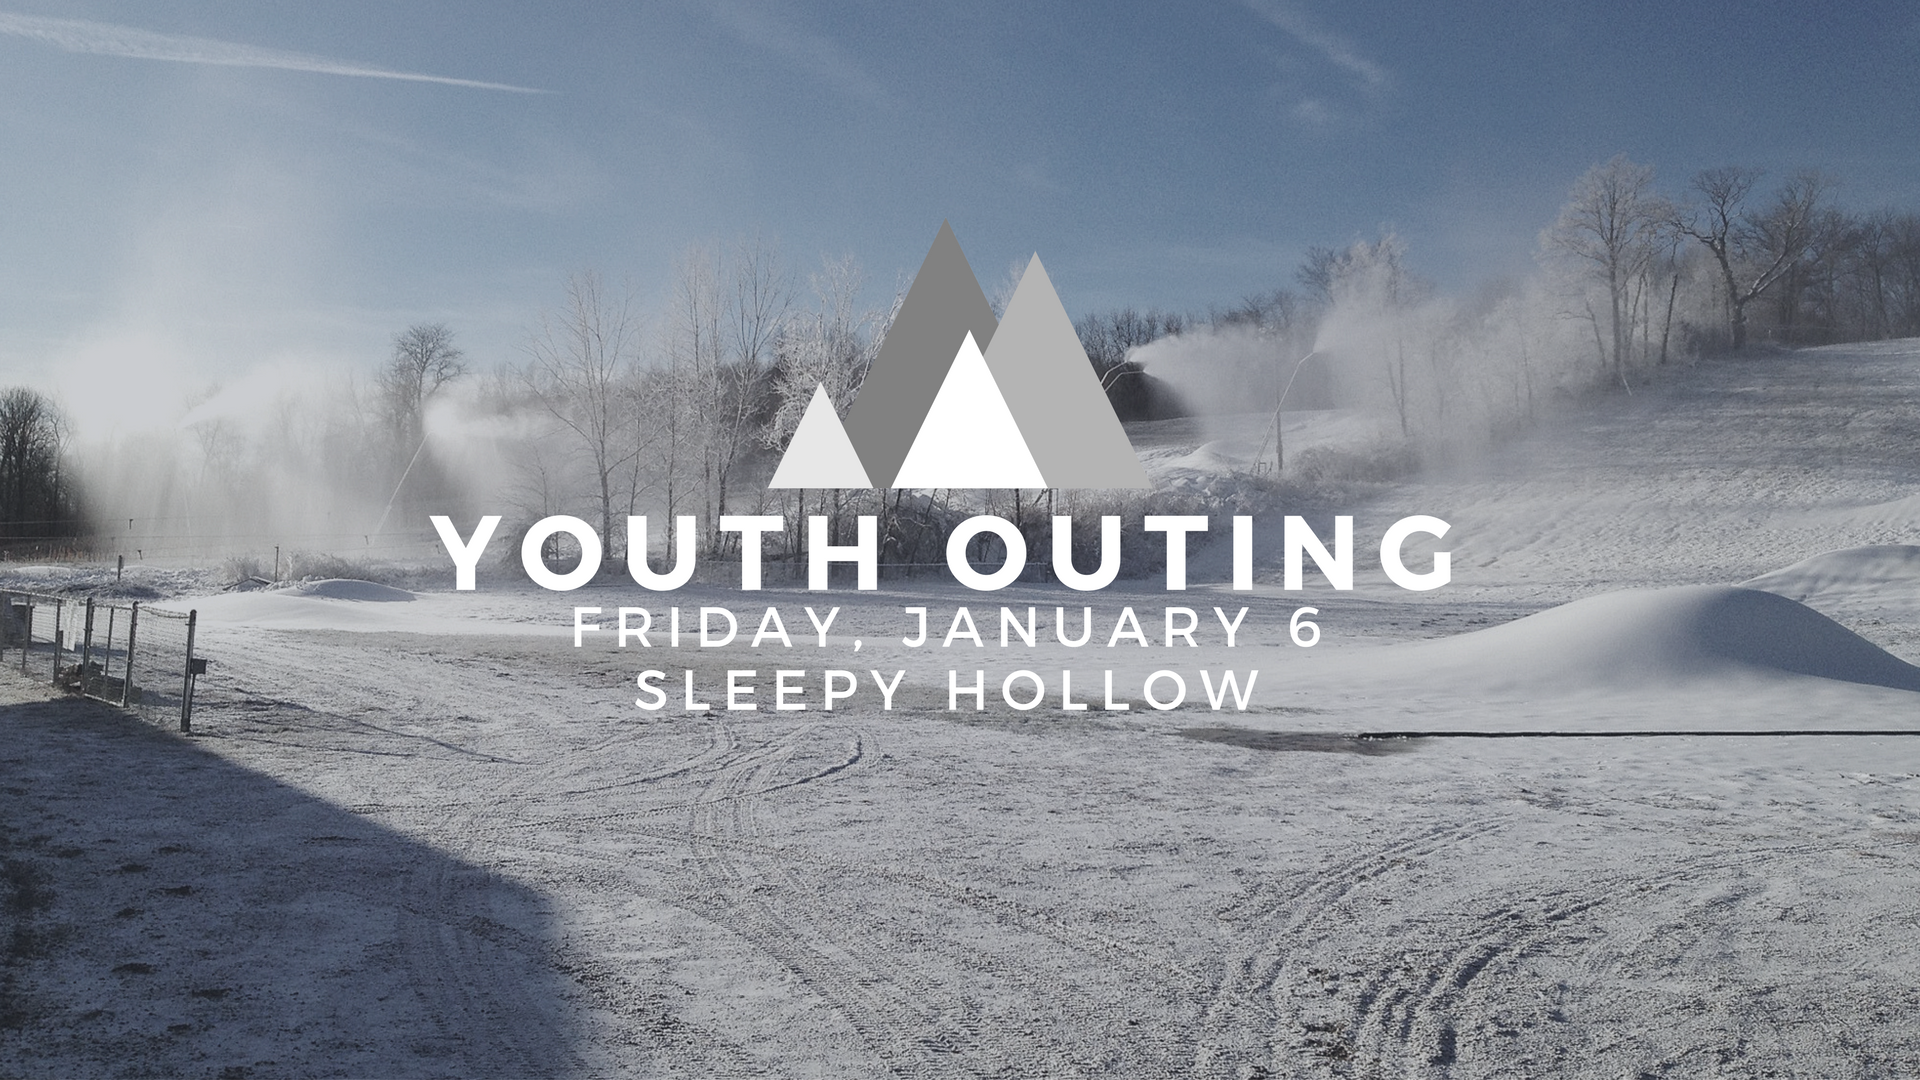 Gateway Youth (Middle &High school students)will be taking the slopes of Sleepy Hollow after a pizza dinner! Contact nate@thegatewaychurch.com for more details!